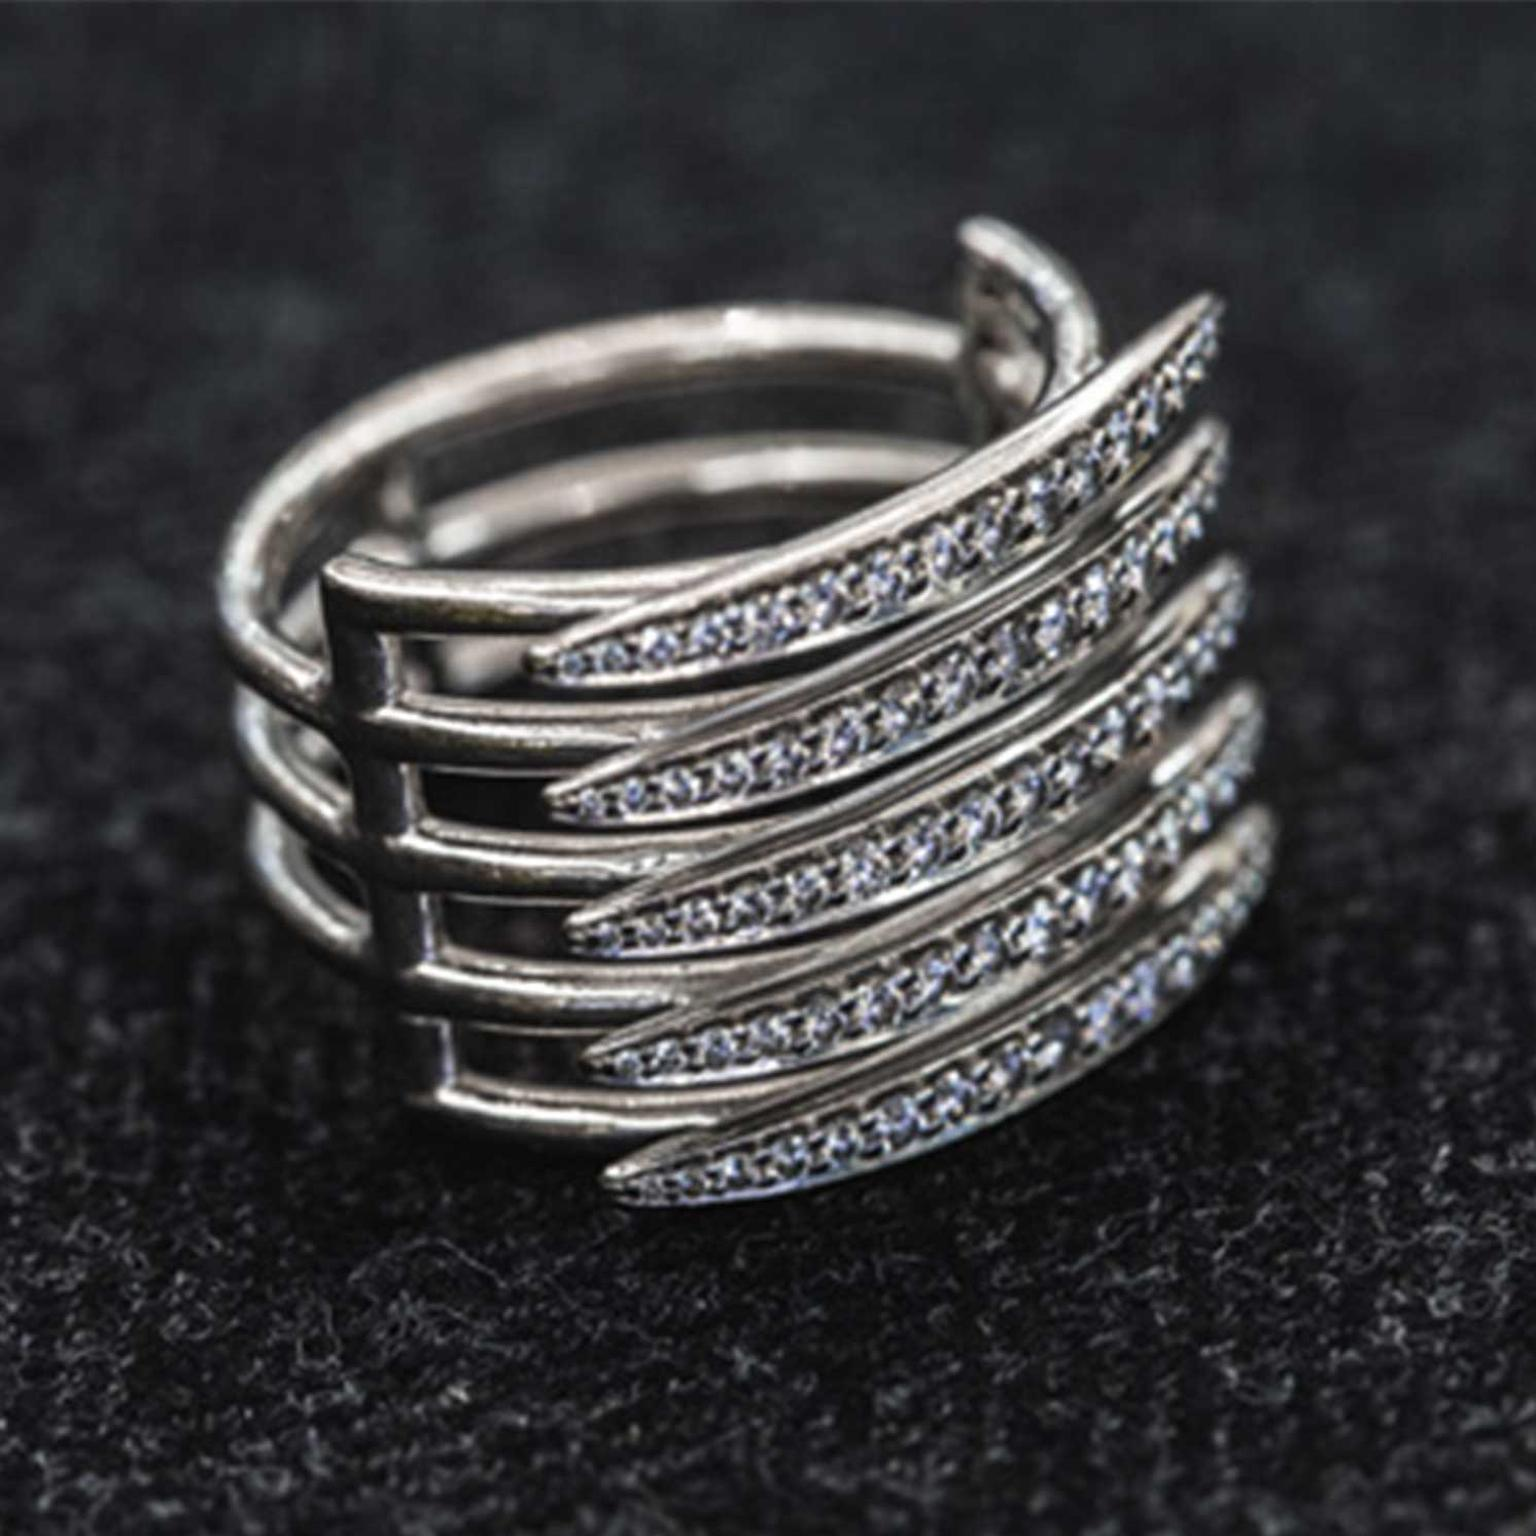 Quill ring for men by Shaun Leane